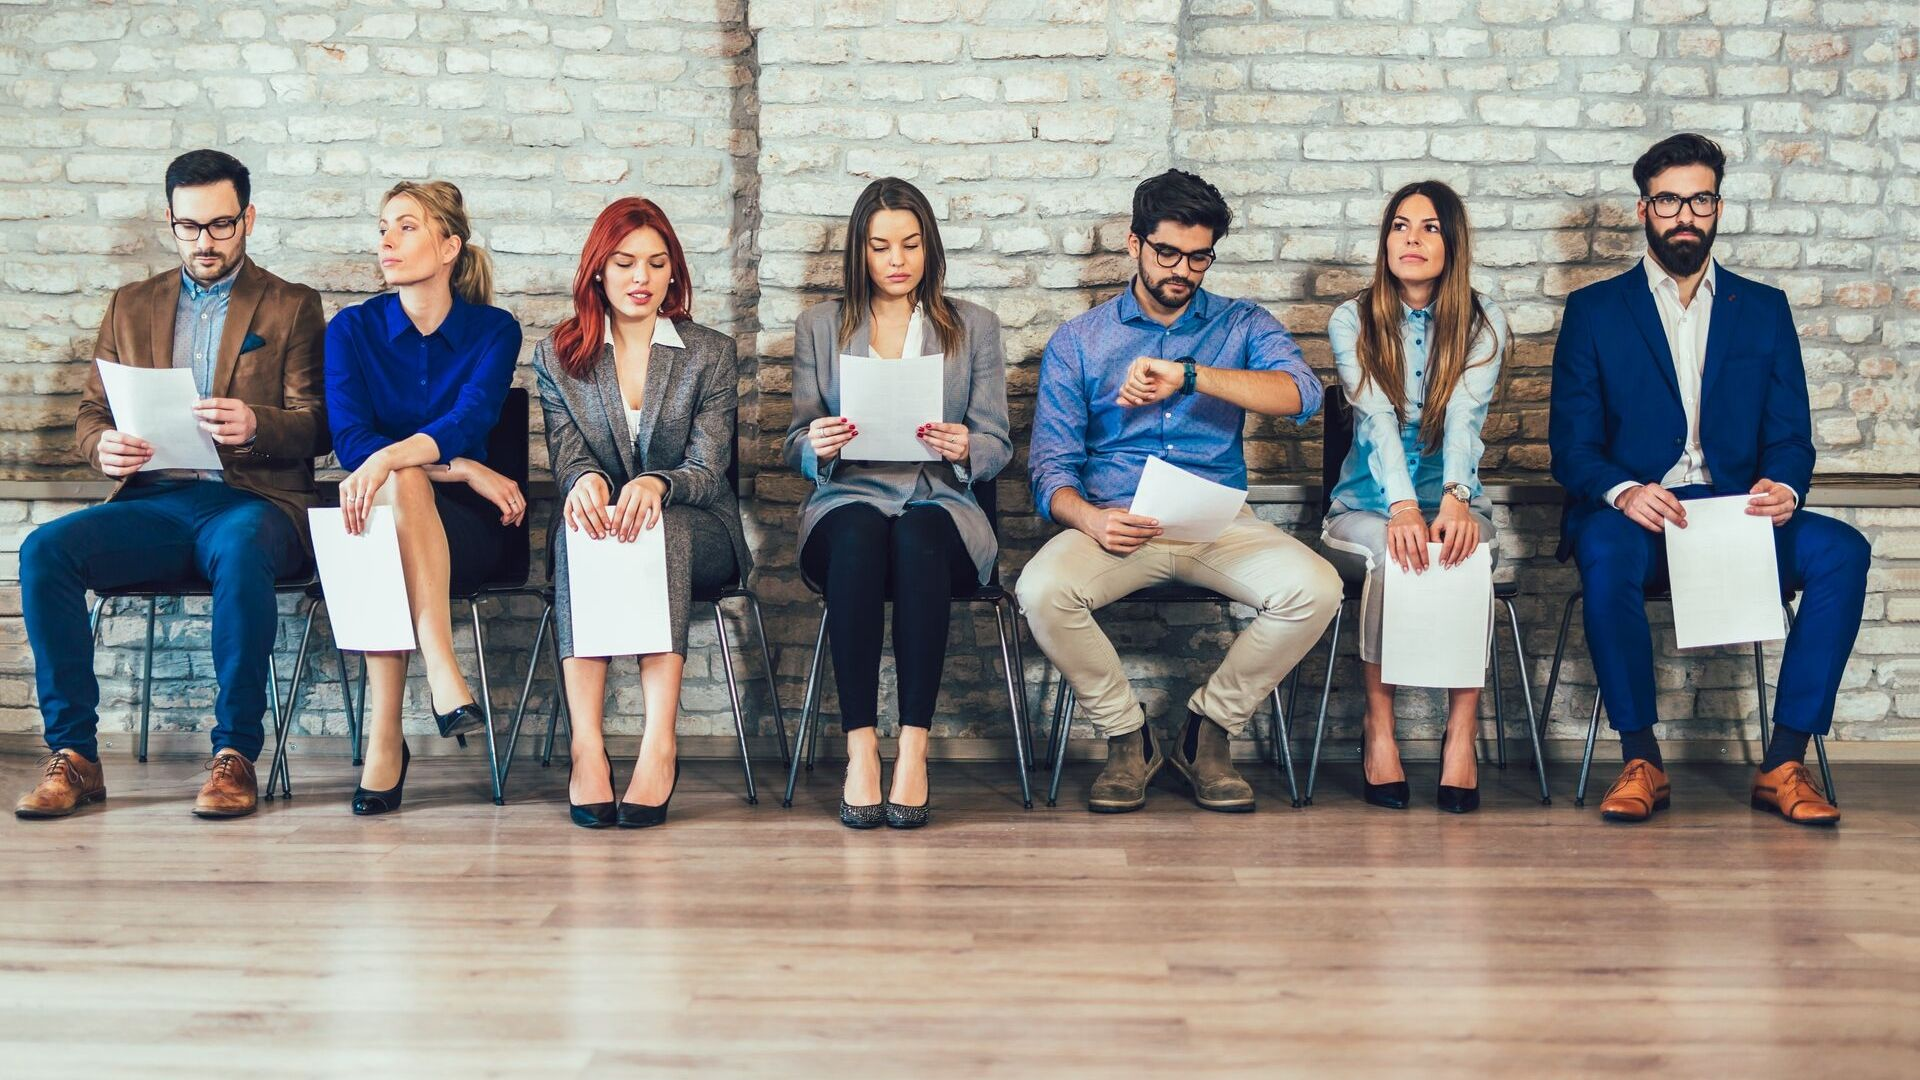 line of people sitting on chairs waiting for job interview